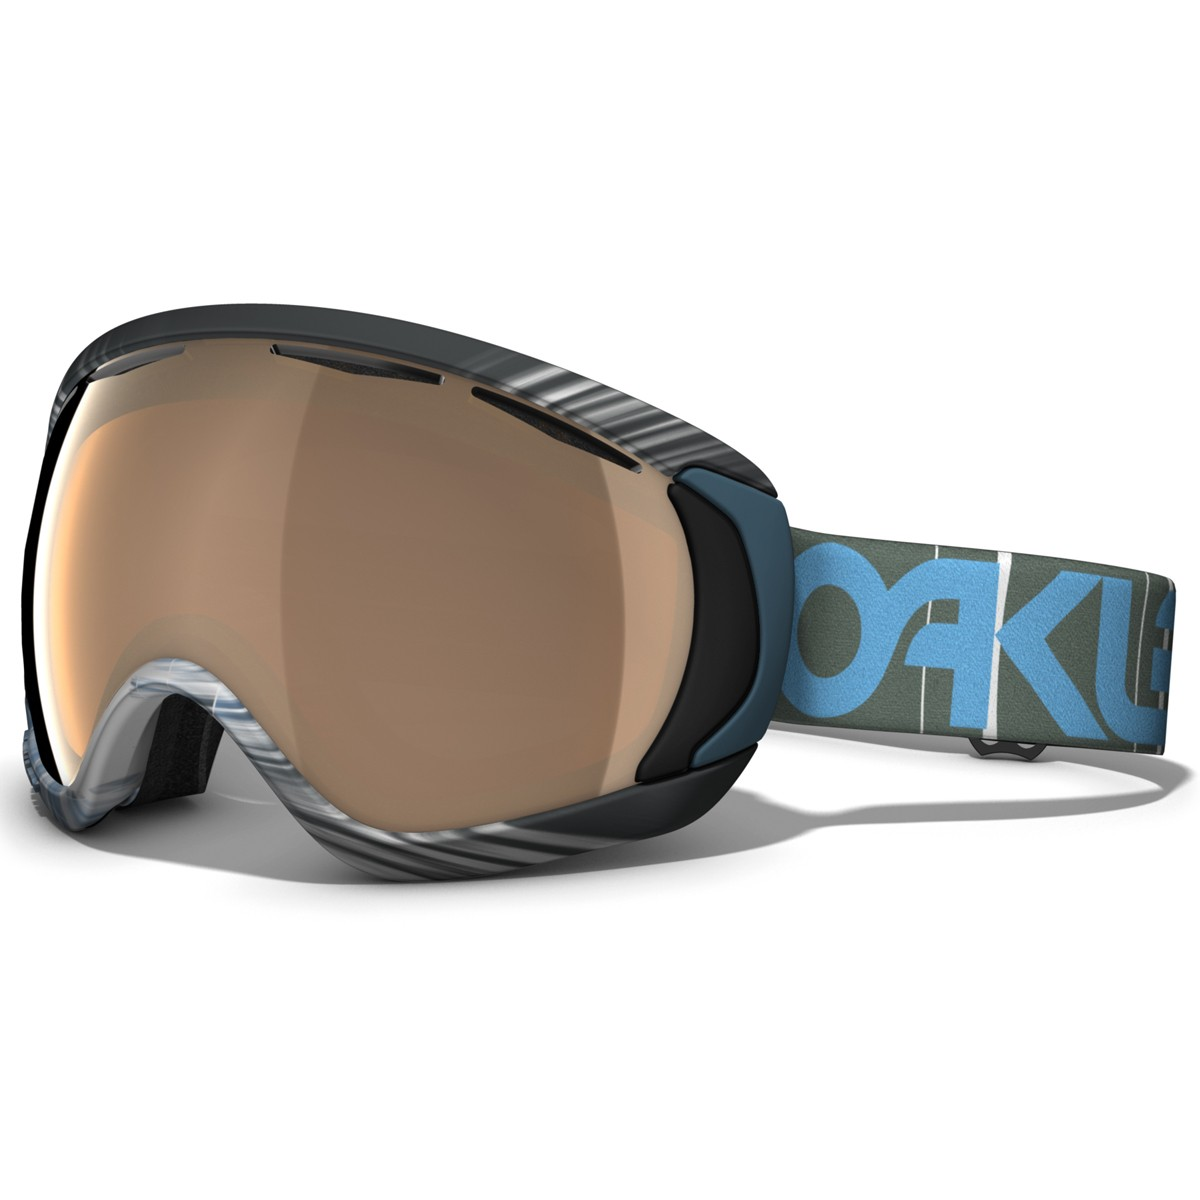 oakley canopy snowboard goggles 2015 session 1242 black iridium hi persimmon - Black Canopy 2015